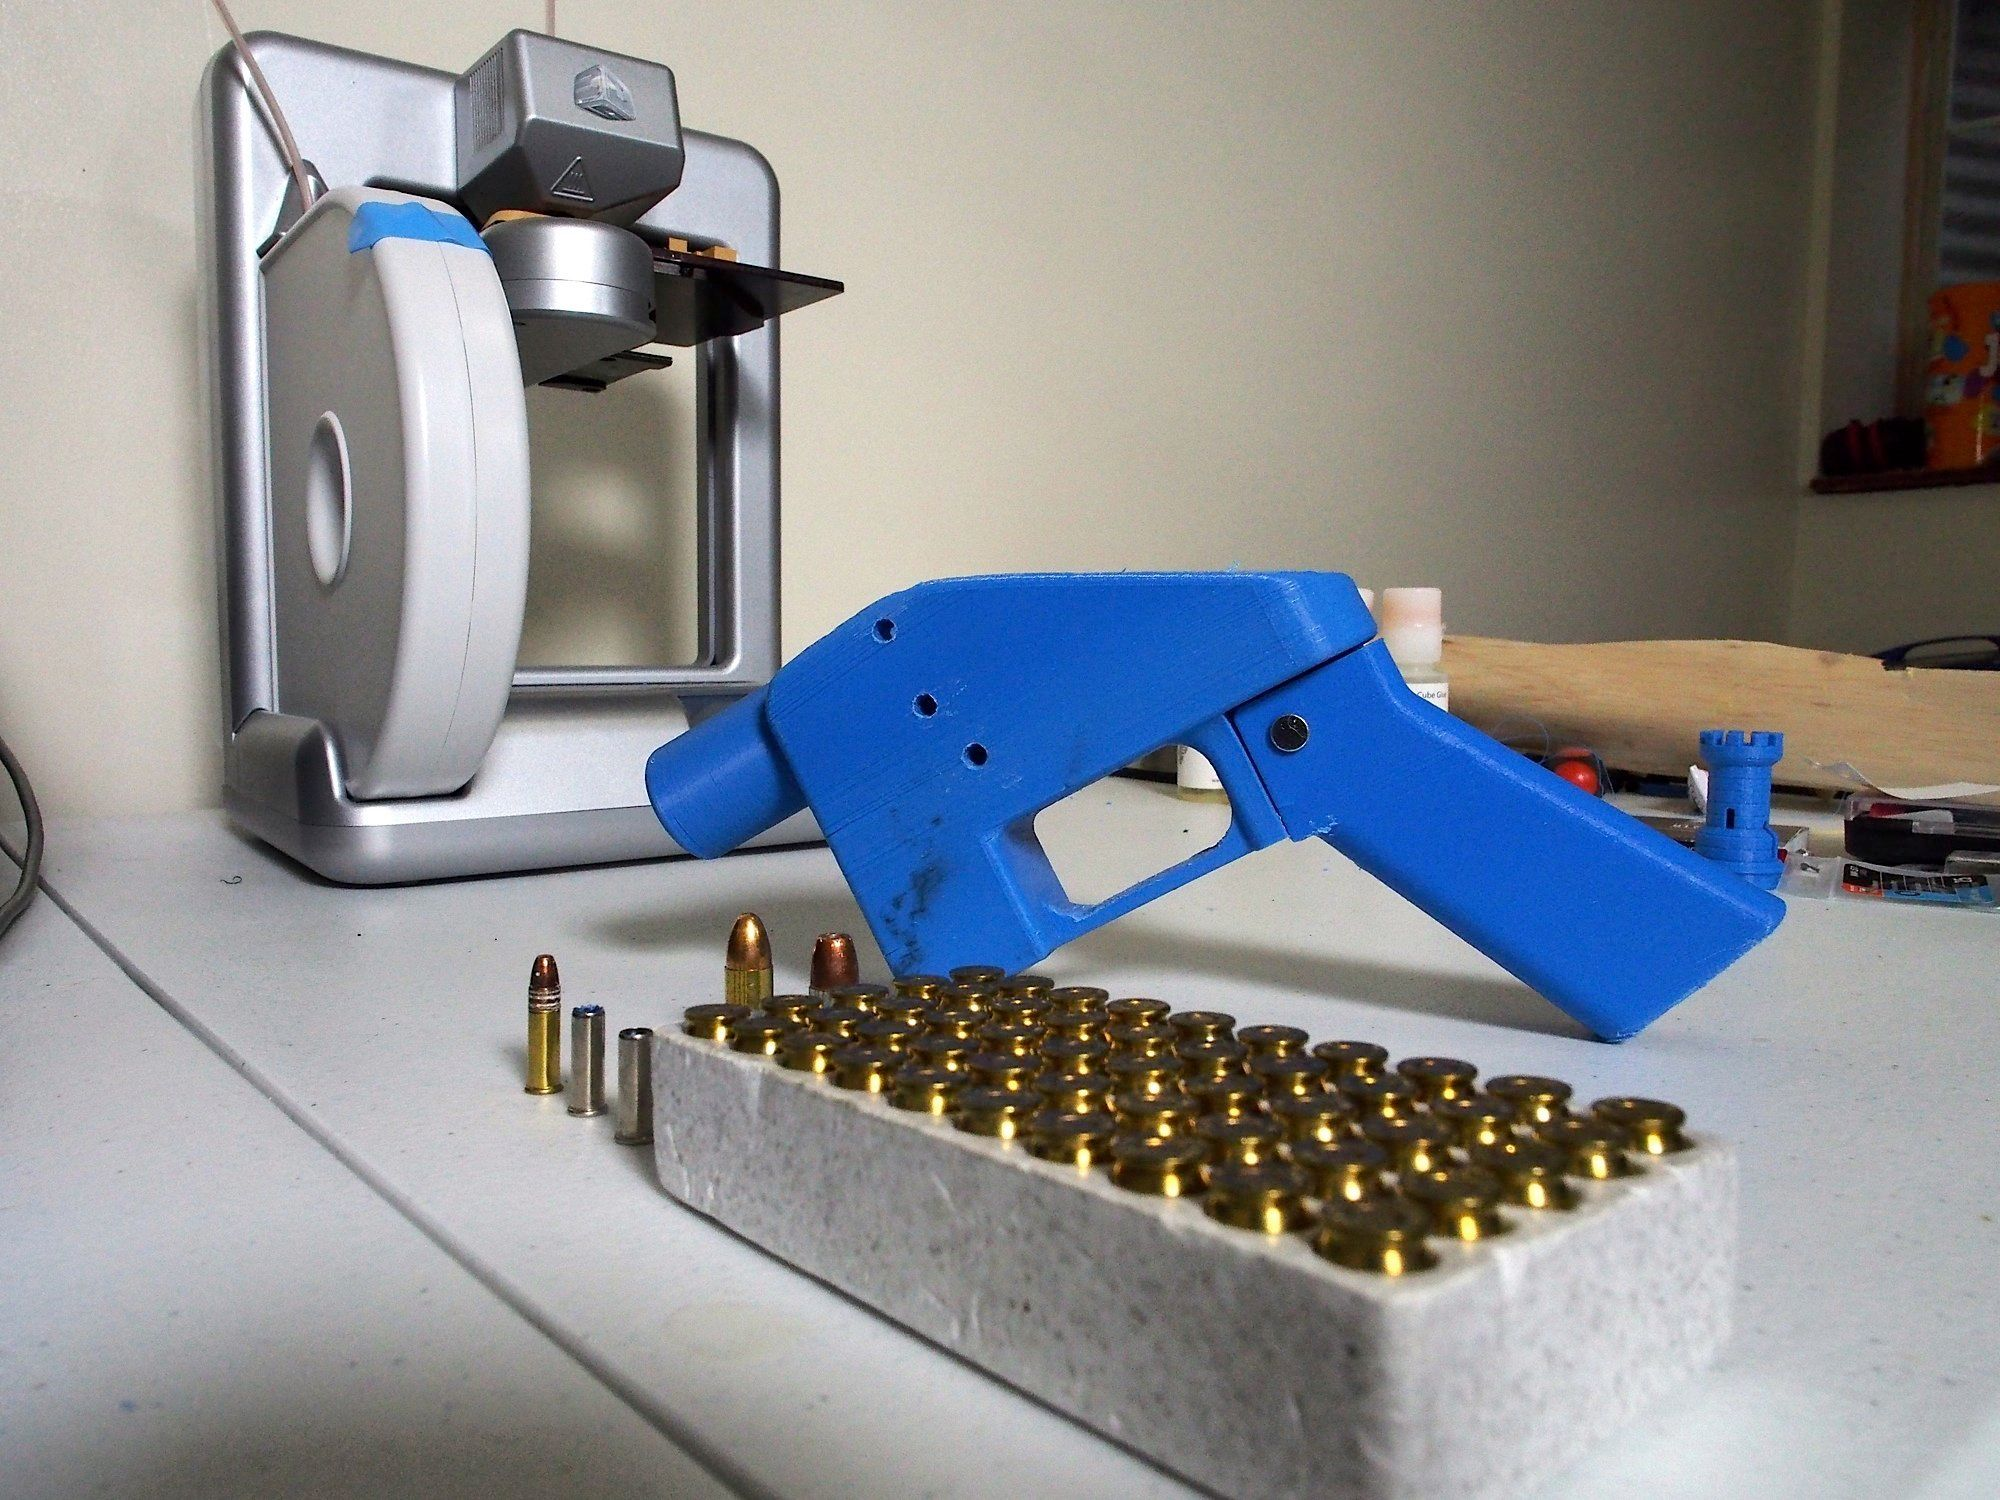 PROBABLY NOT A GOOD IDEA: People Will Soon Be Able To 3D Print Guns In The